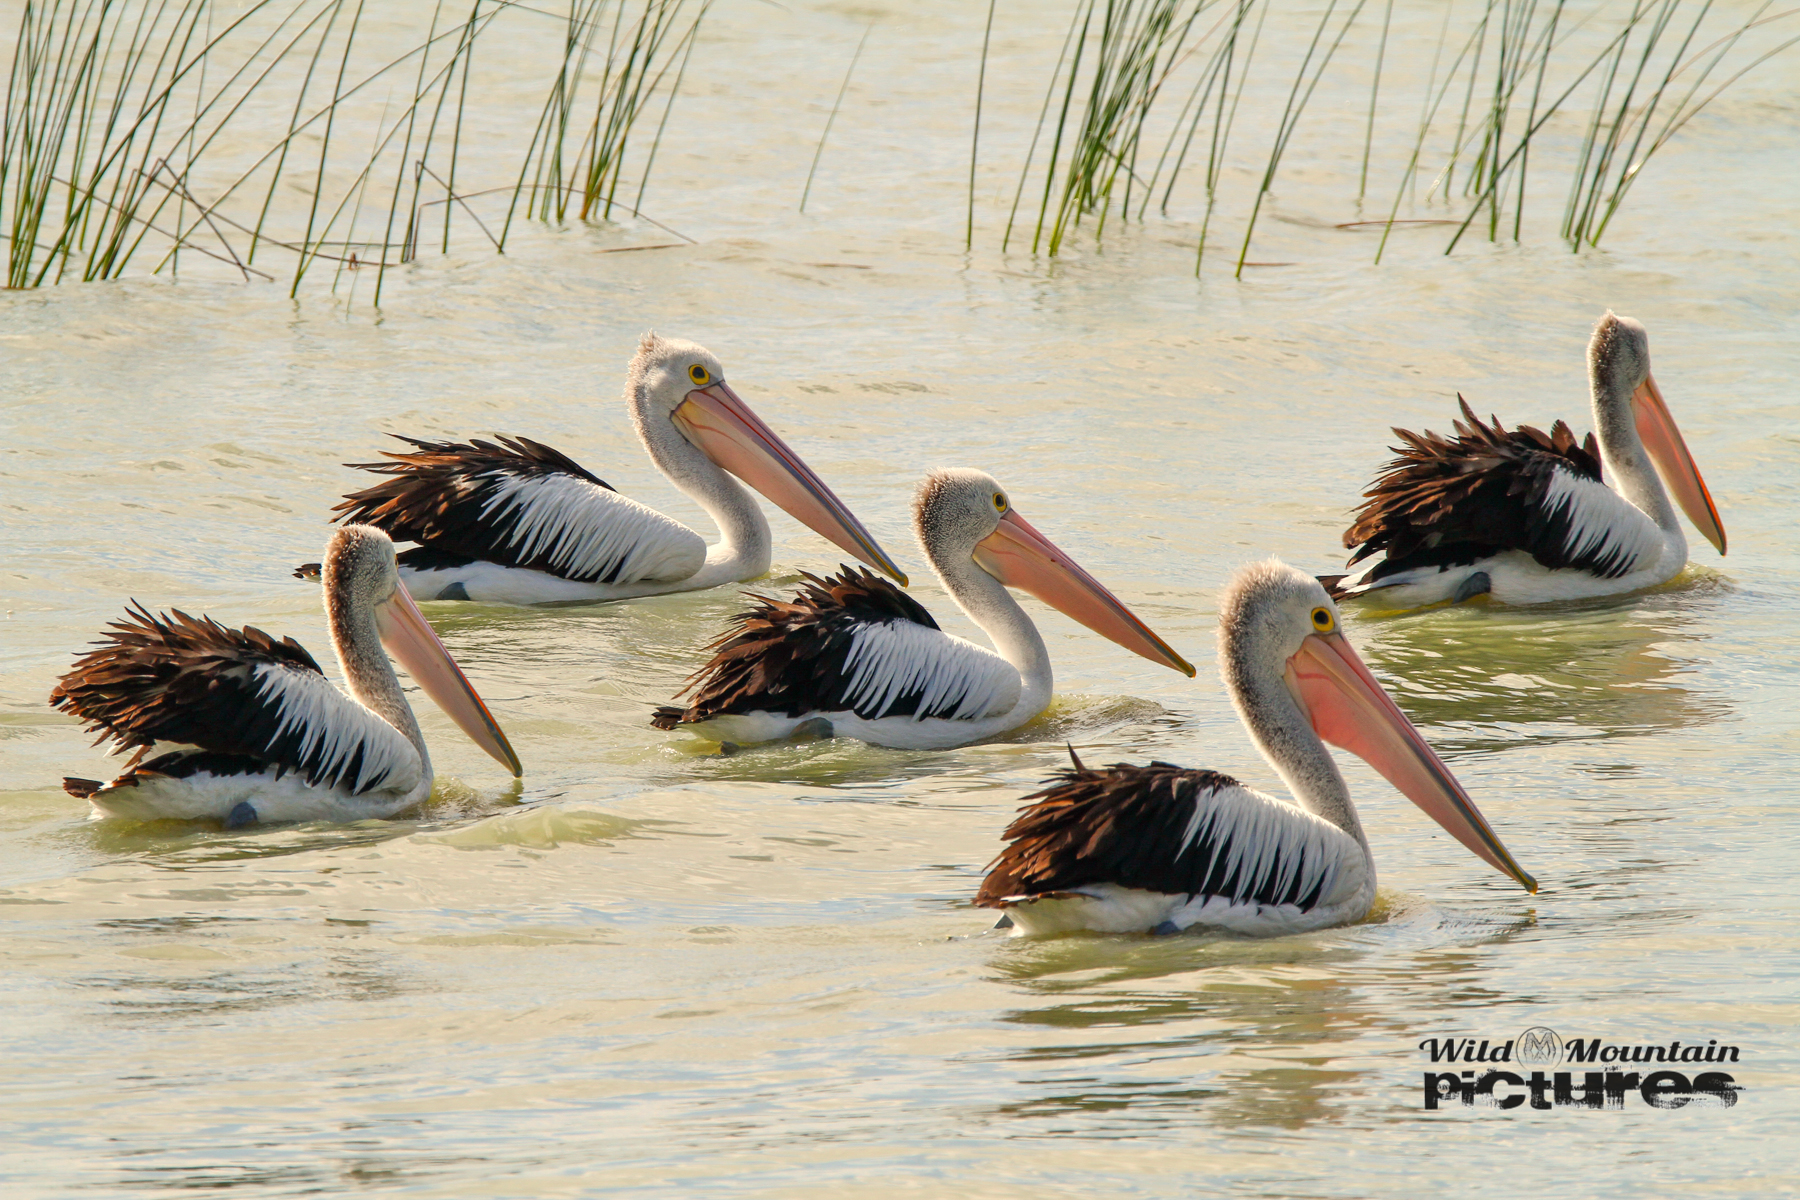 Some Pelicans